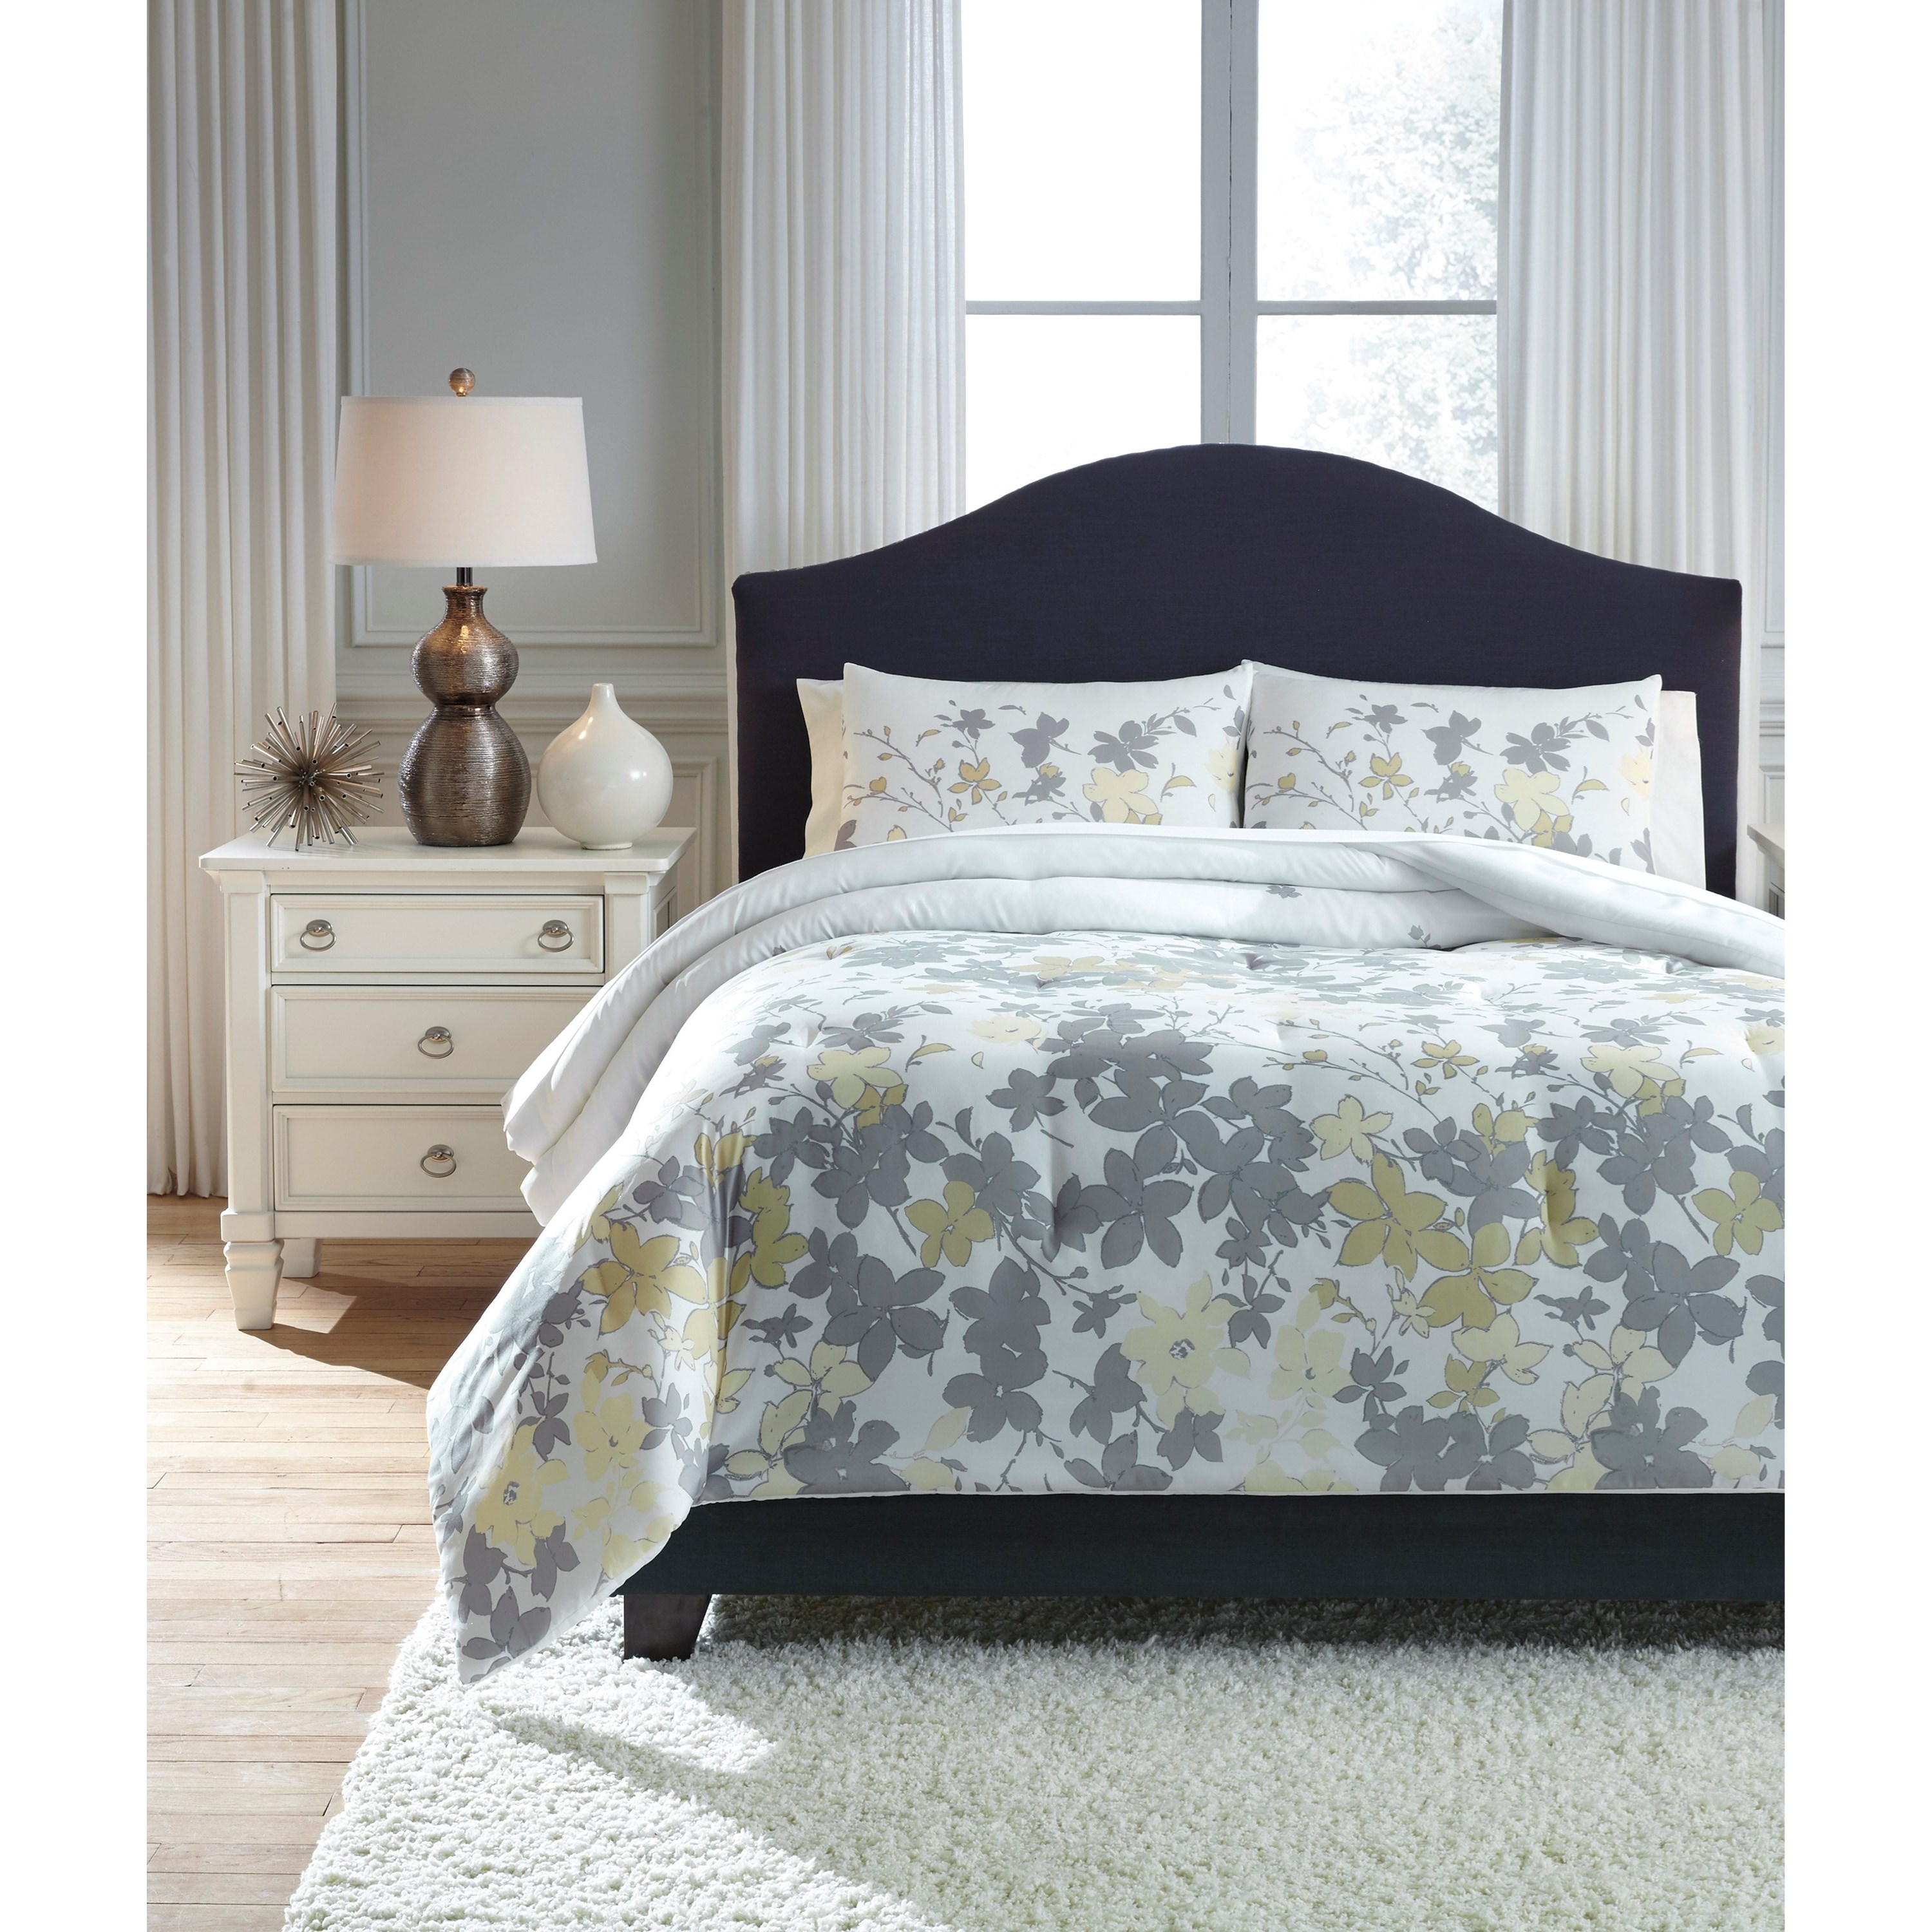 Bedding Sets Queen Maureen Gray/Yellow Comforter Set by Ashley (Signature Design) at Johnny Janosik